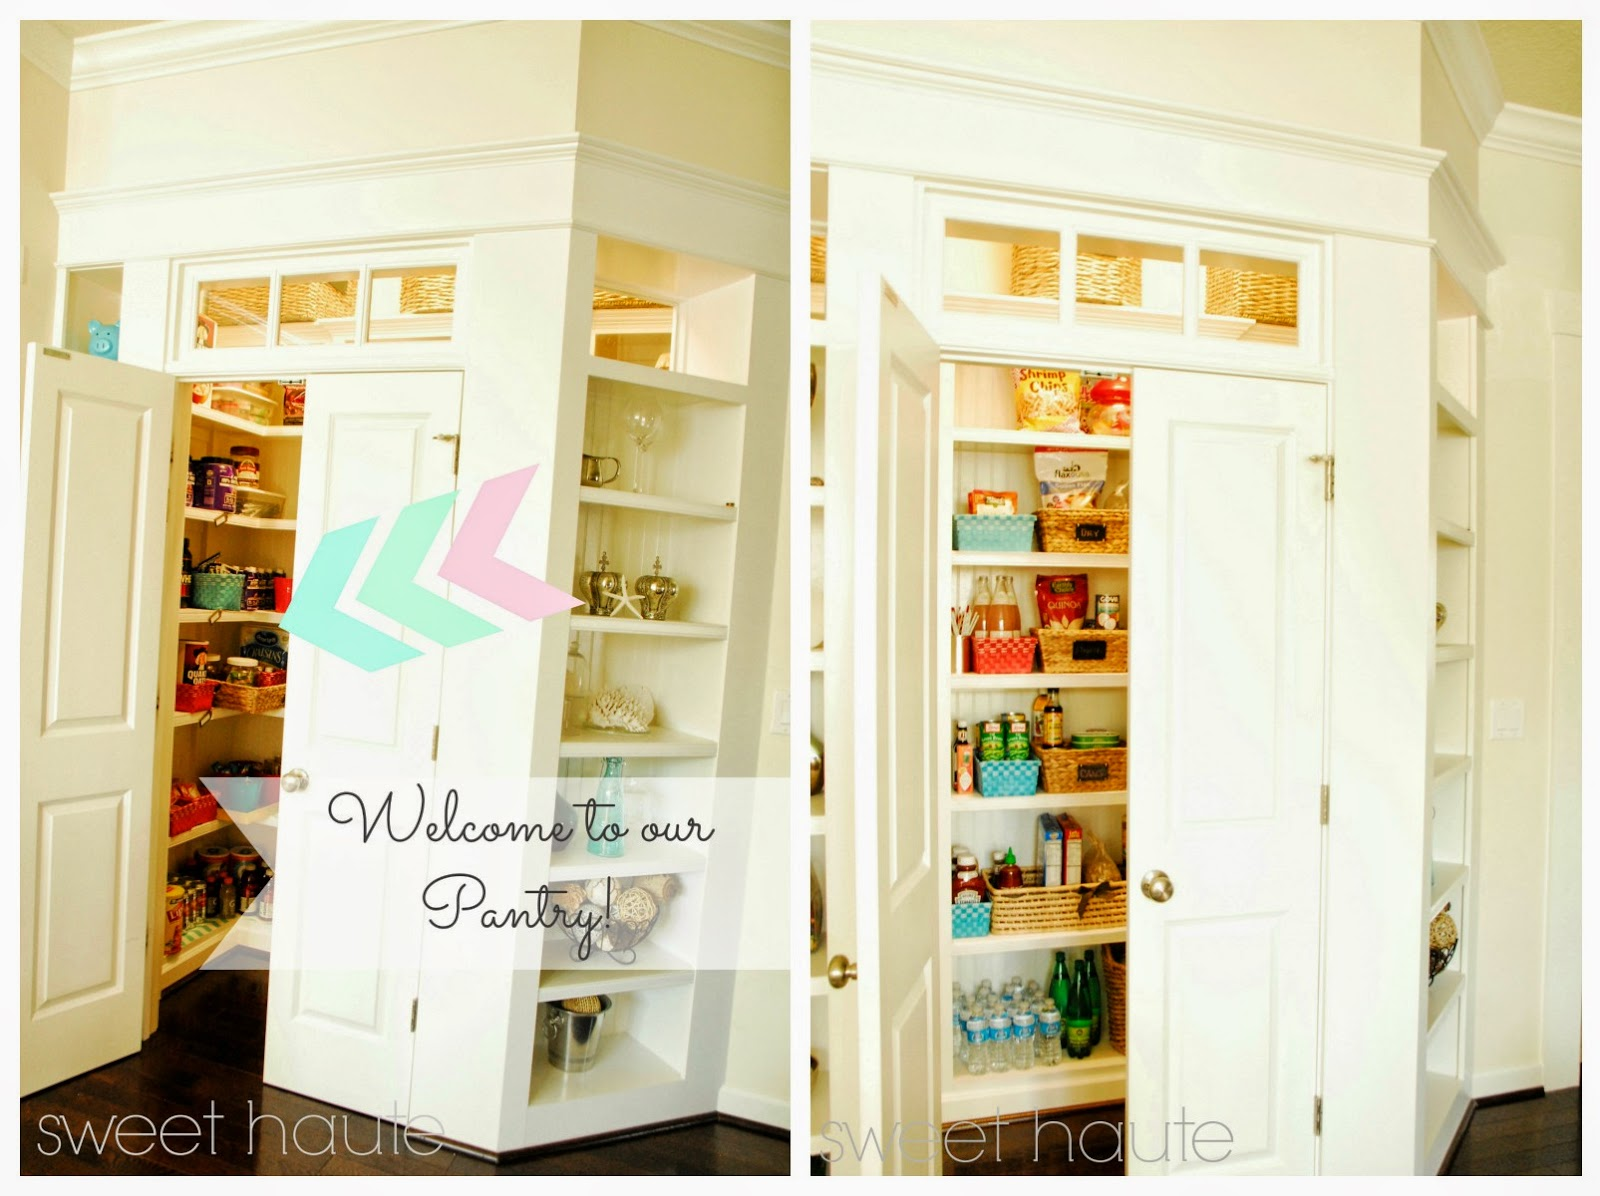 http://sweethaute.blogspot.com/2014/07/pantry-organization-fit-and-happy.html